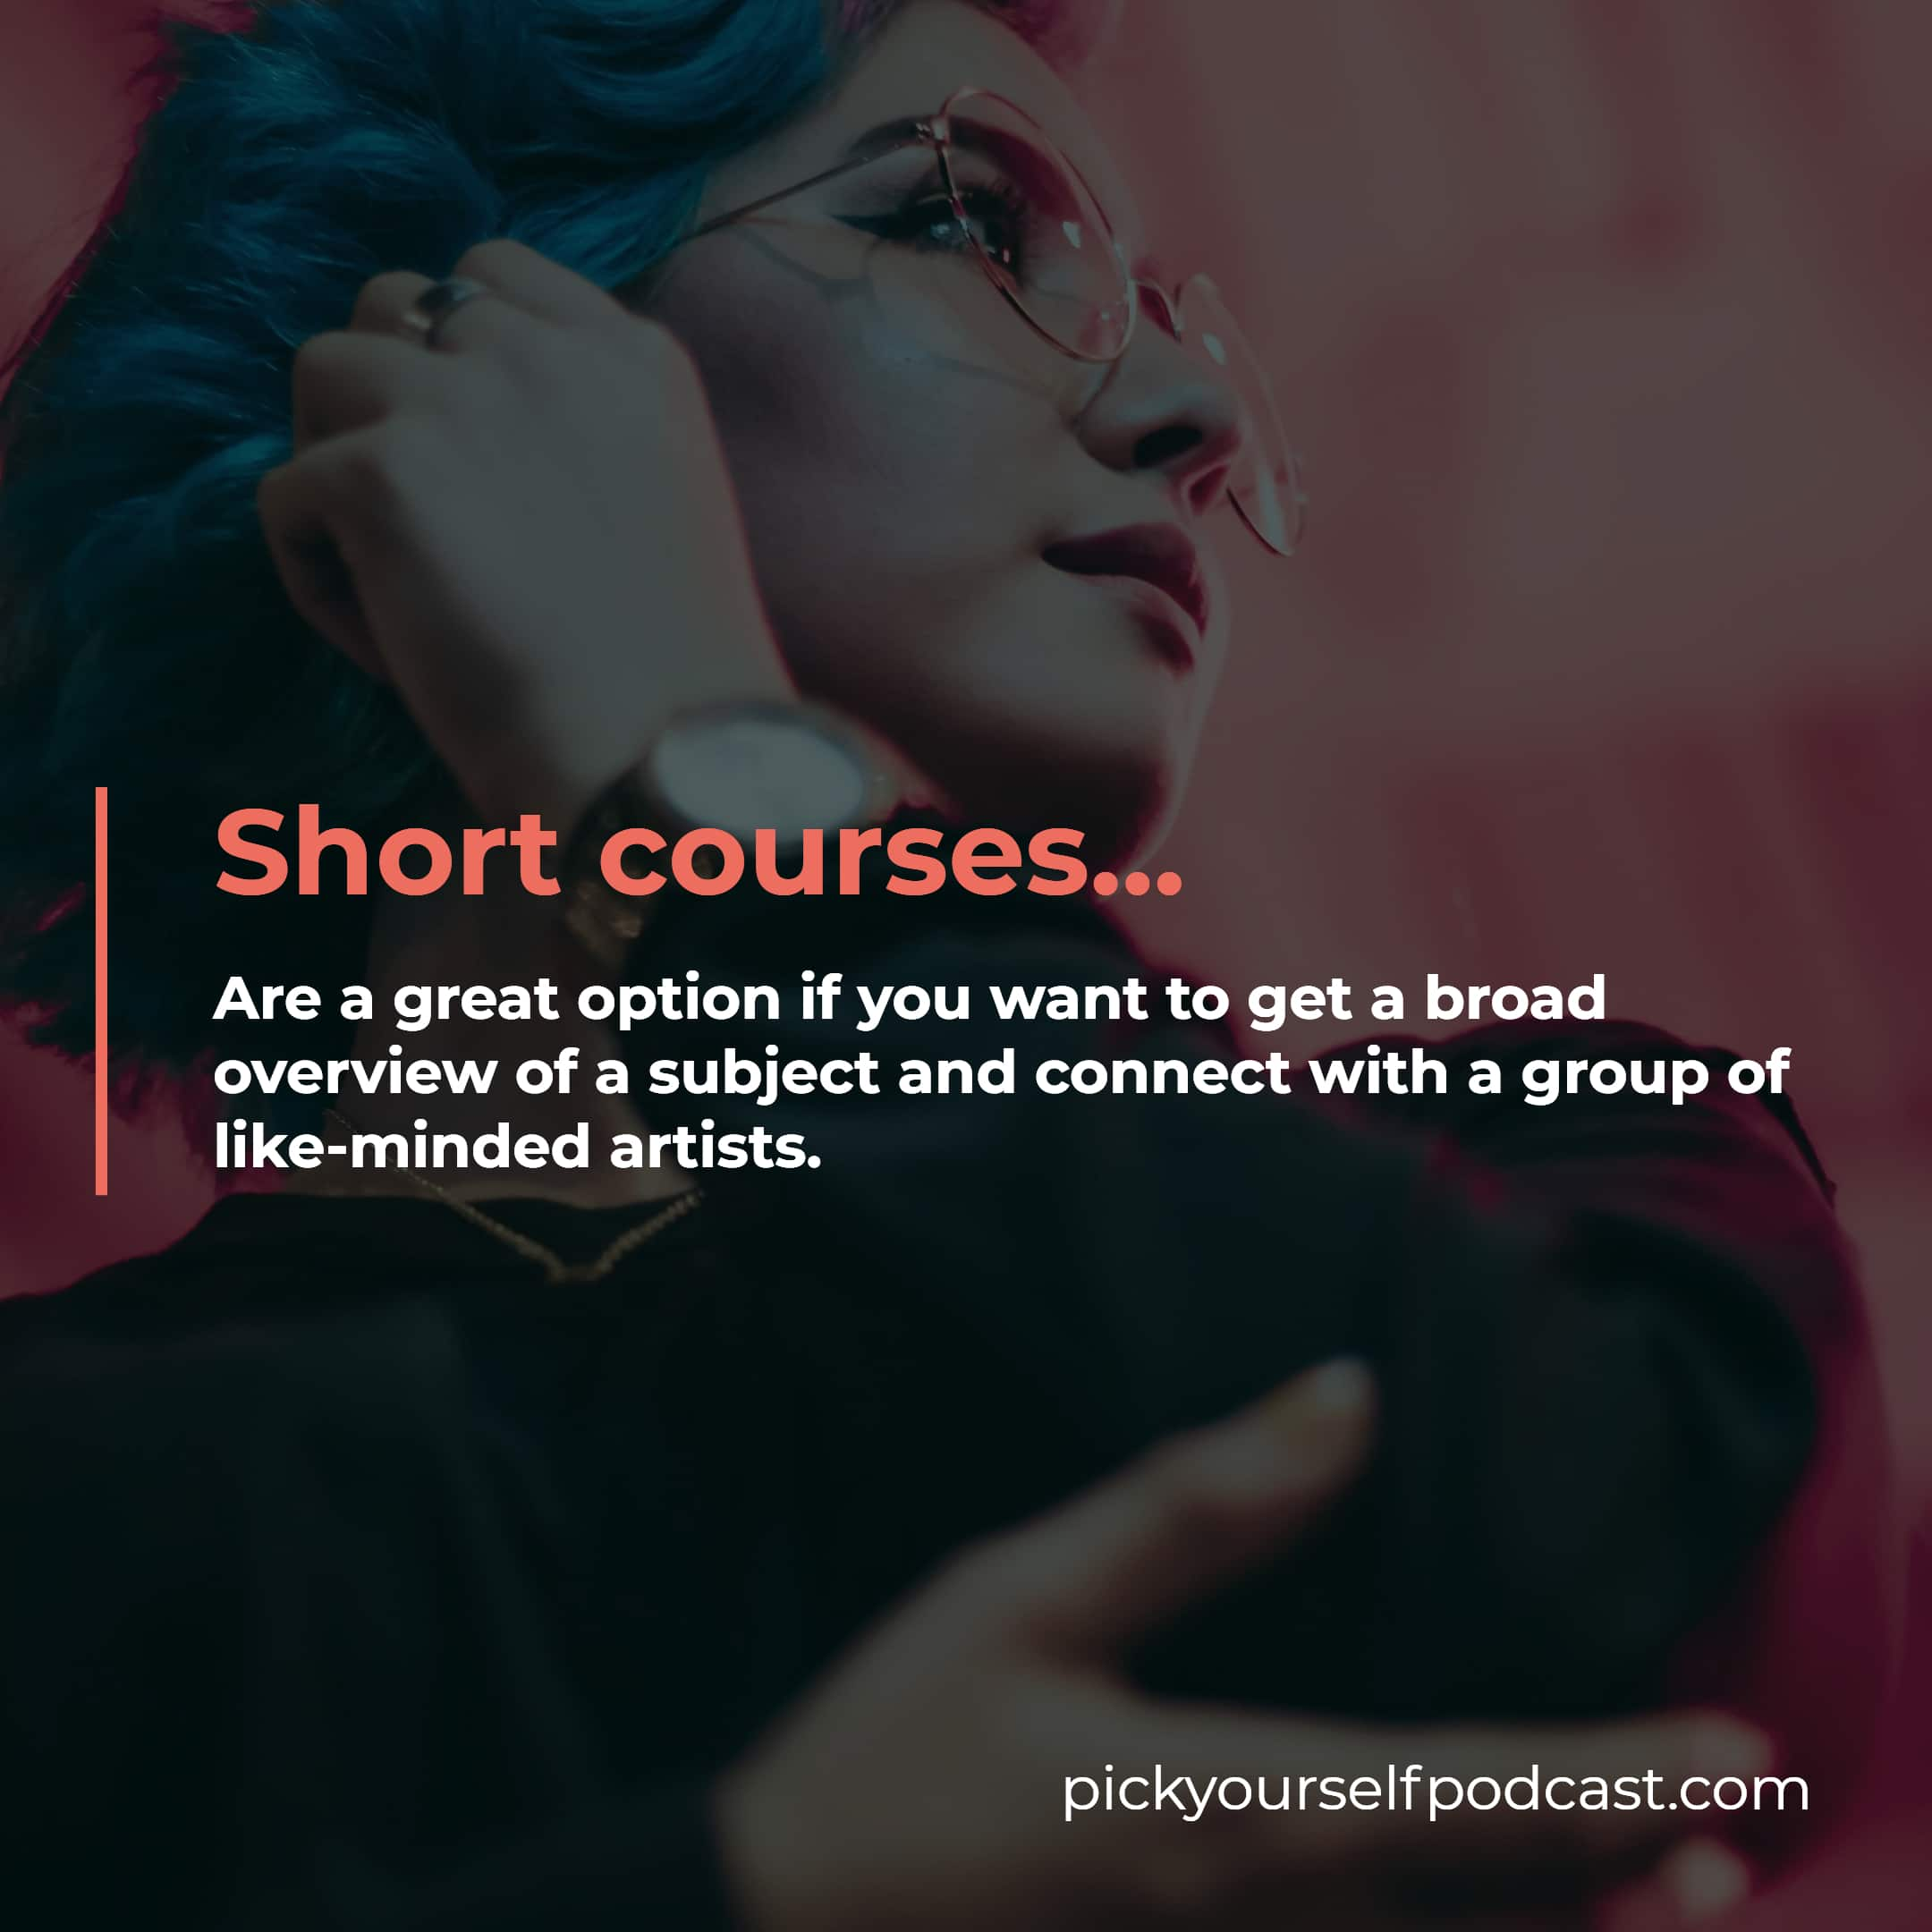 electronic music short courses are perfect if you want to get a broad overview of a subject.